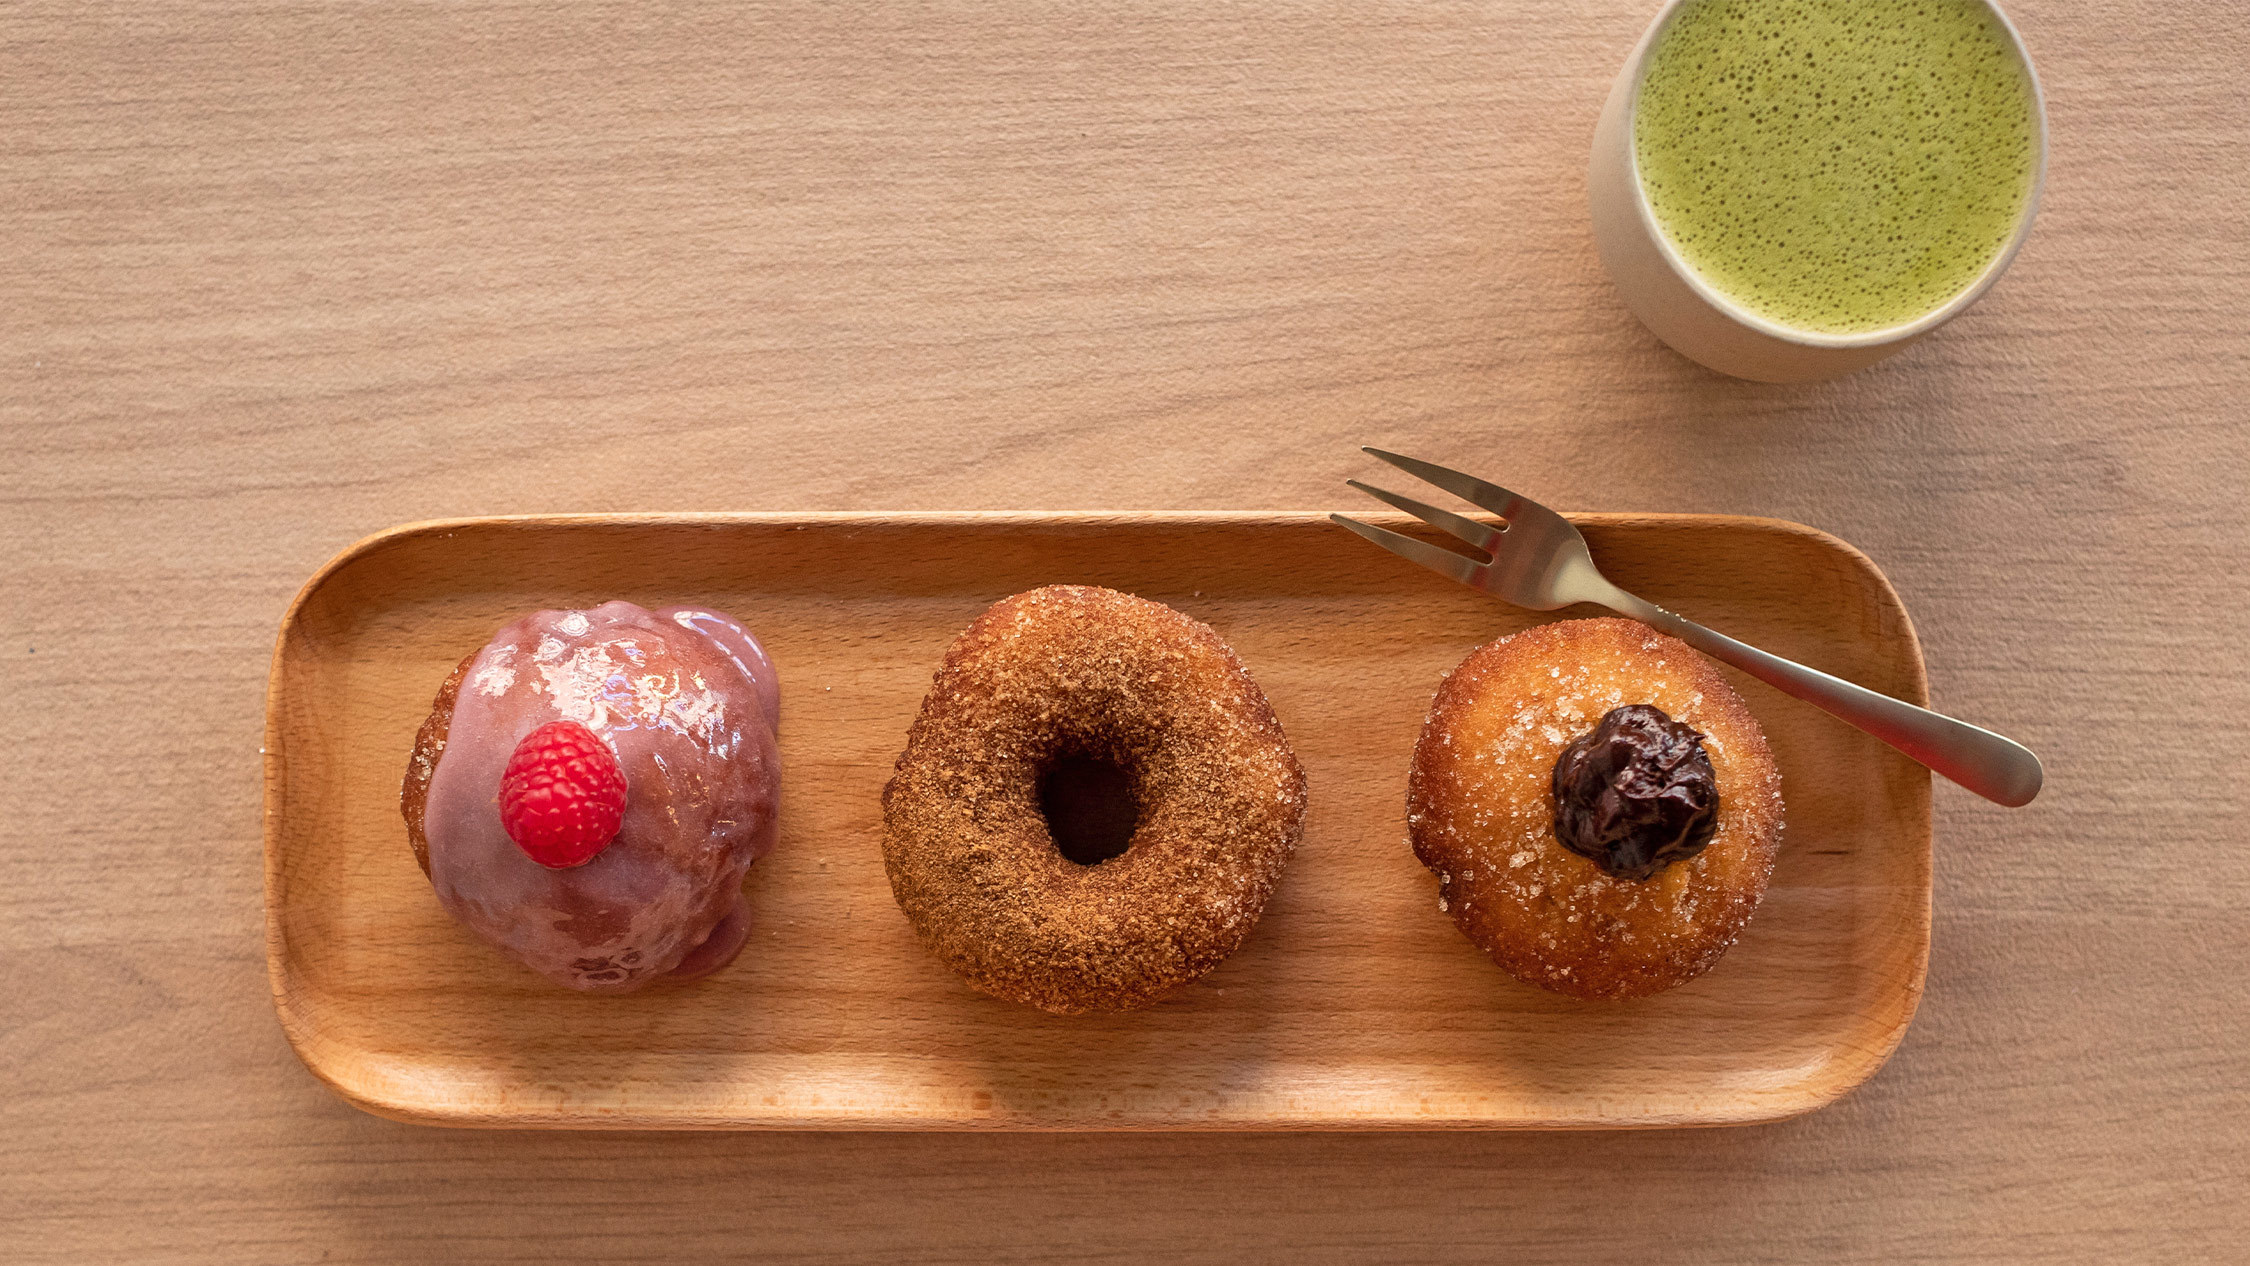 Comeco Foods Raspberry custard sourdoughnut, Organic cinnamon sugar sourdoughnut, Chocolate custard sourdoughnut